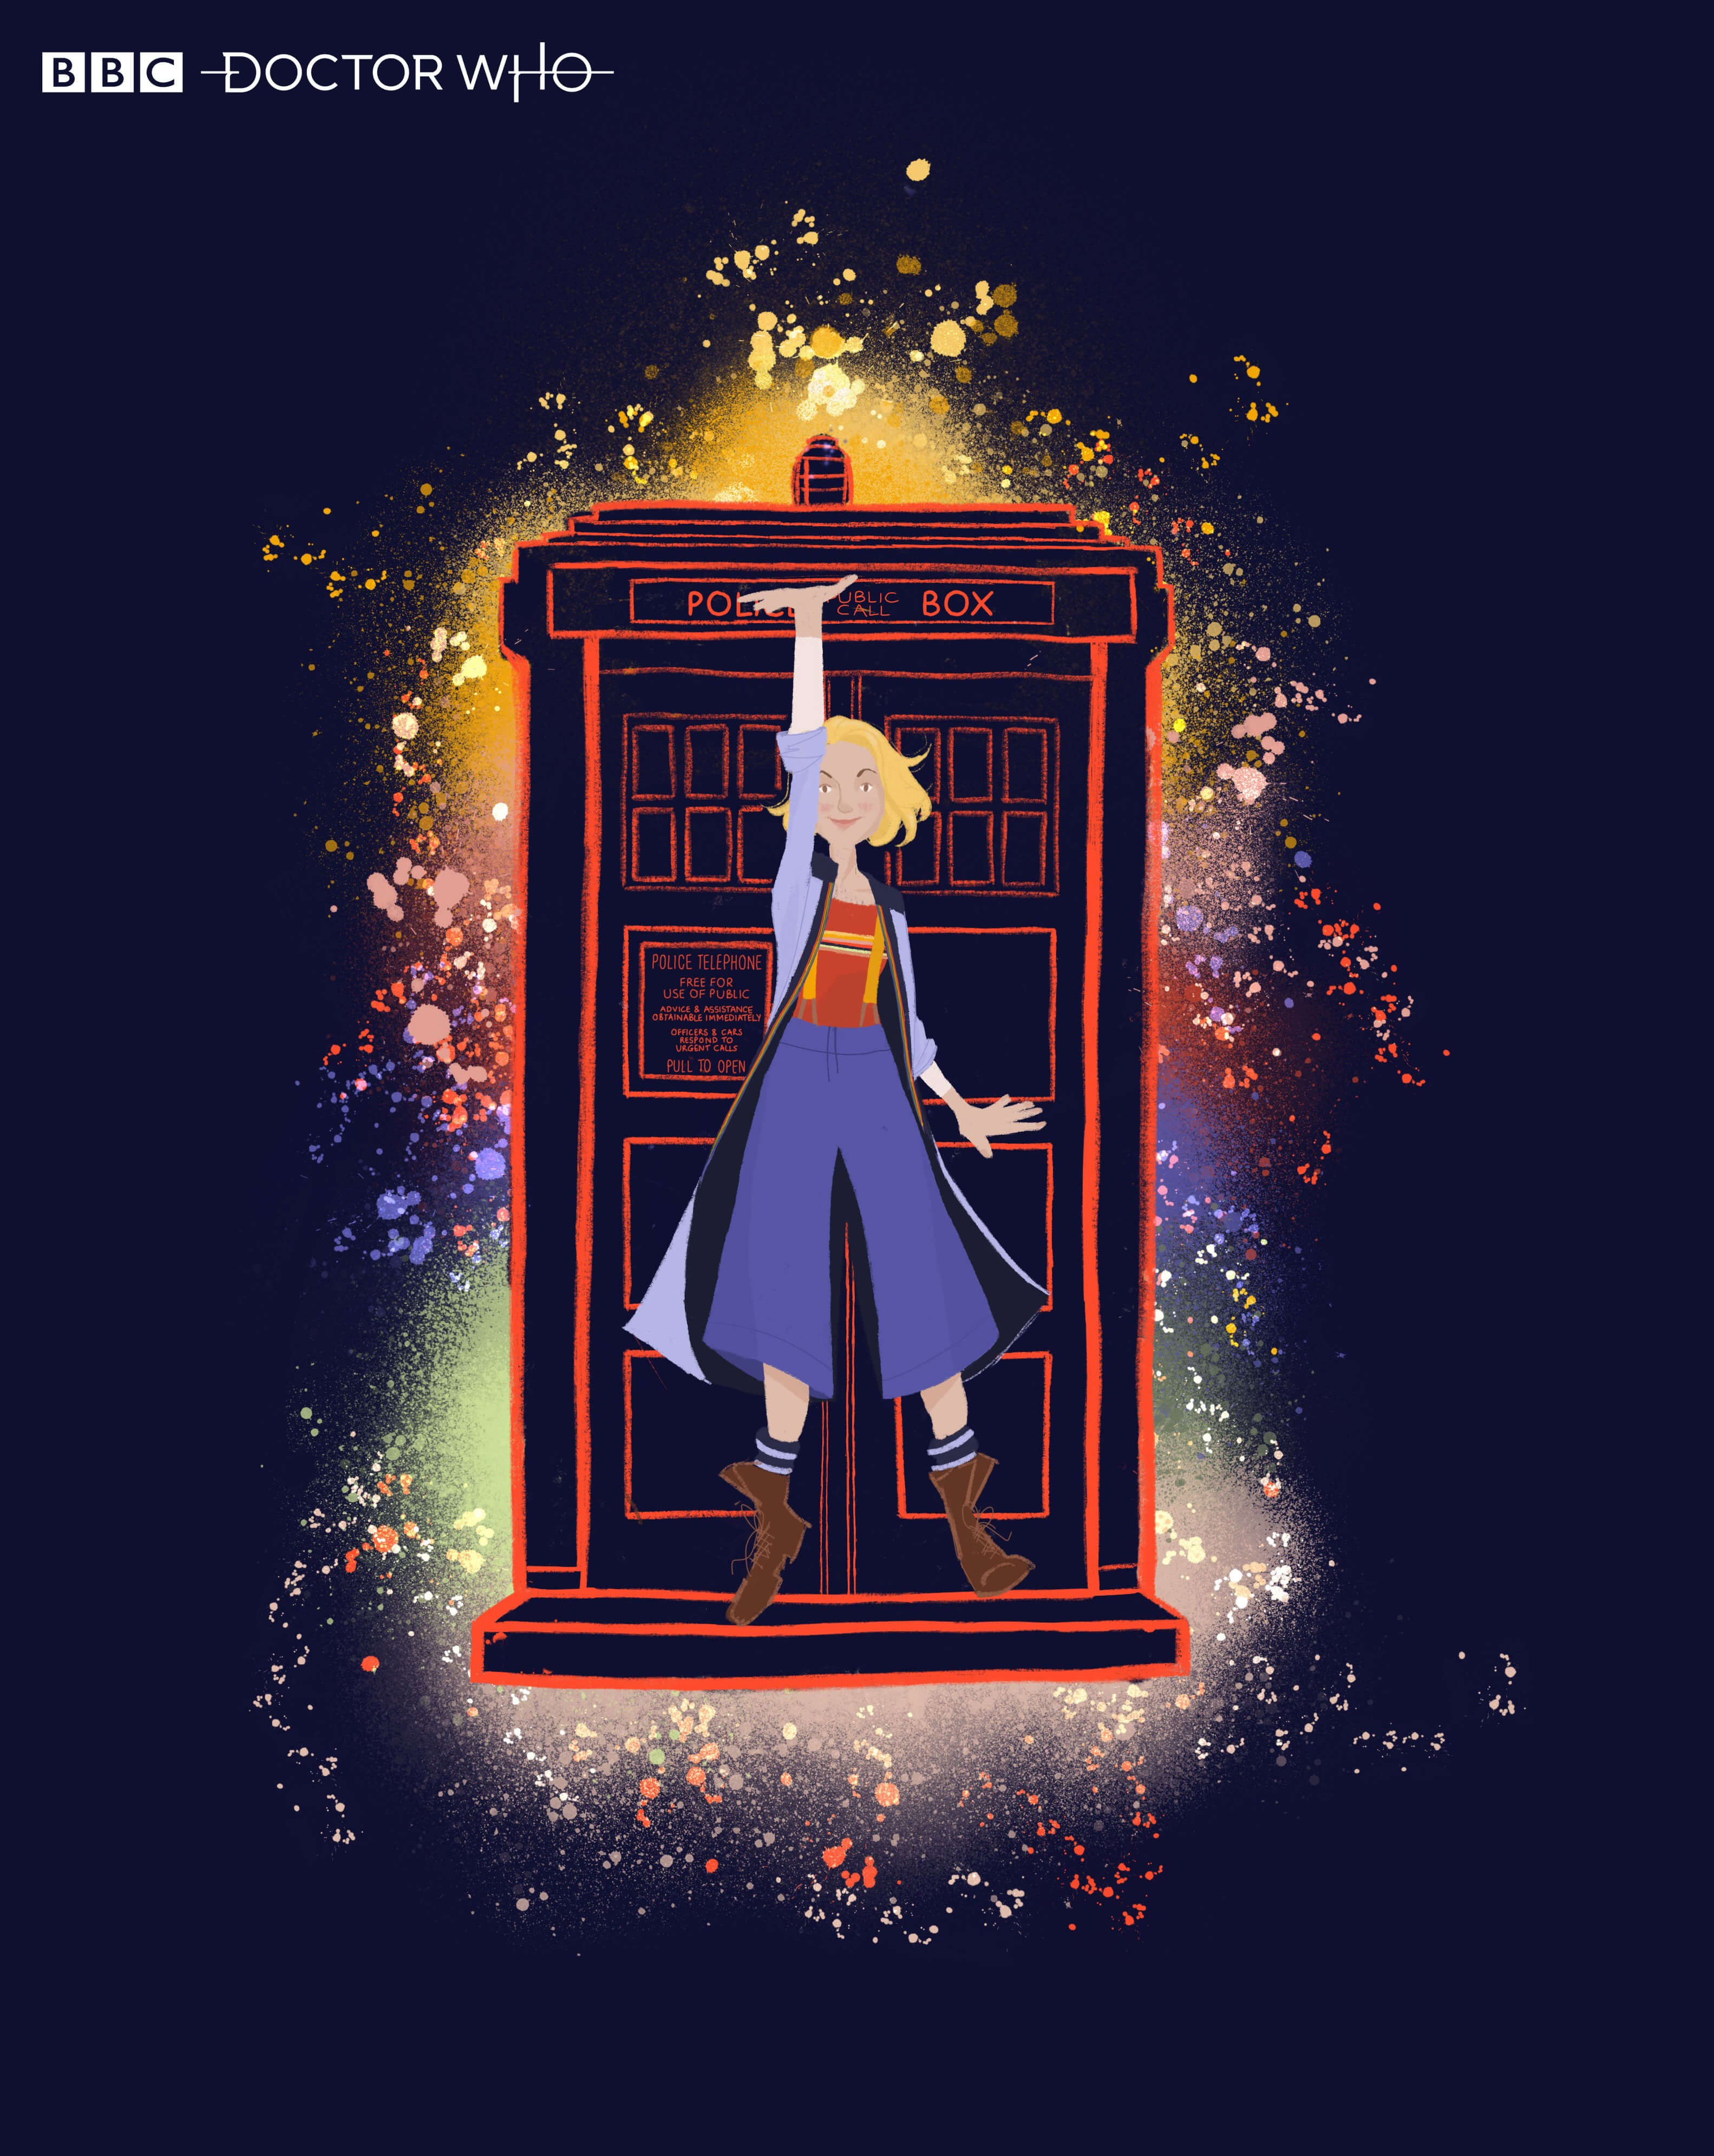 743 Best Doctor Who Fan Art images | Doctor who, Doctor